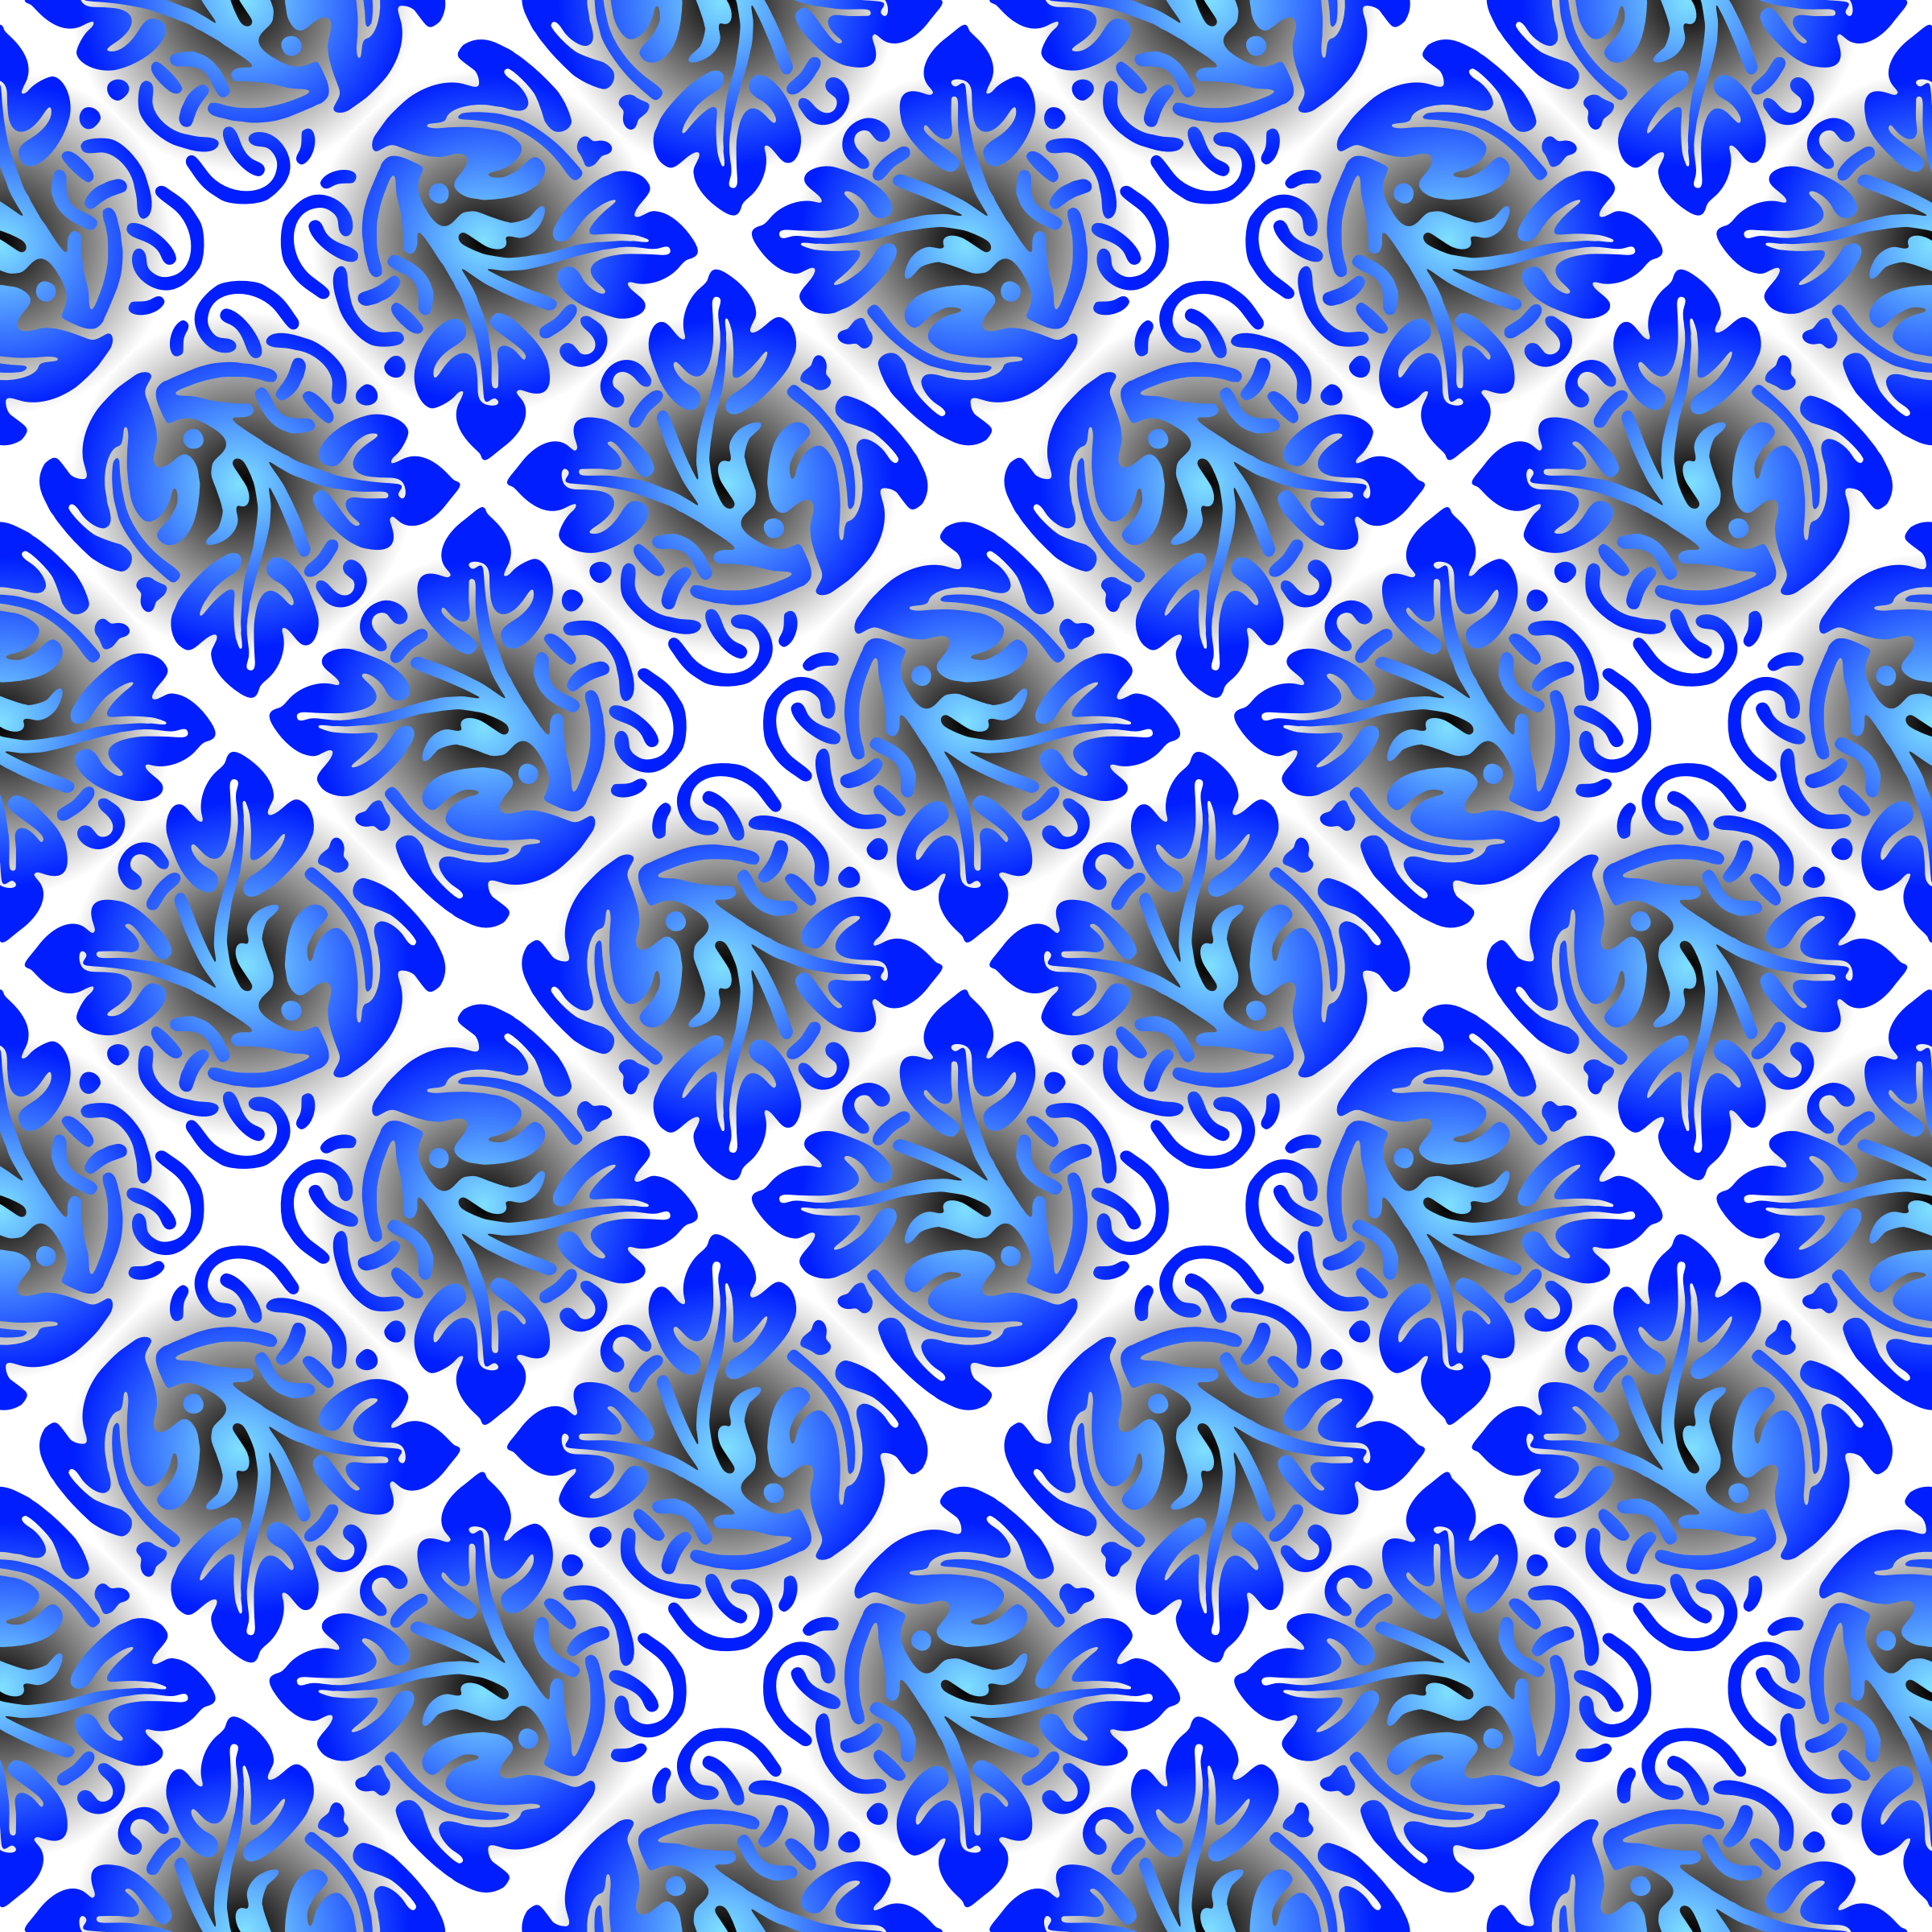 Background pattern 172 (colour 5) by Firkin